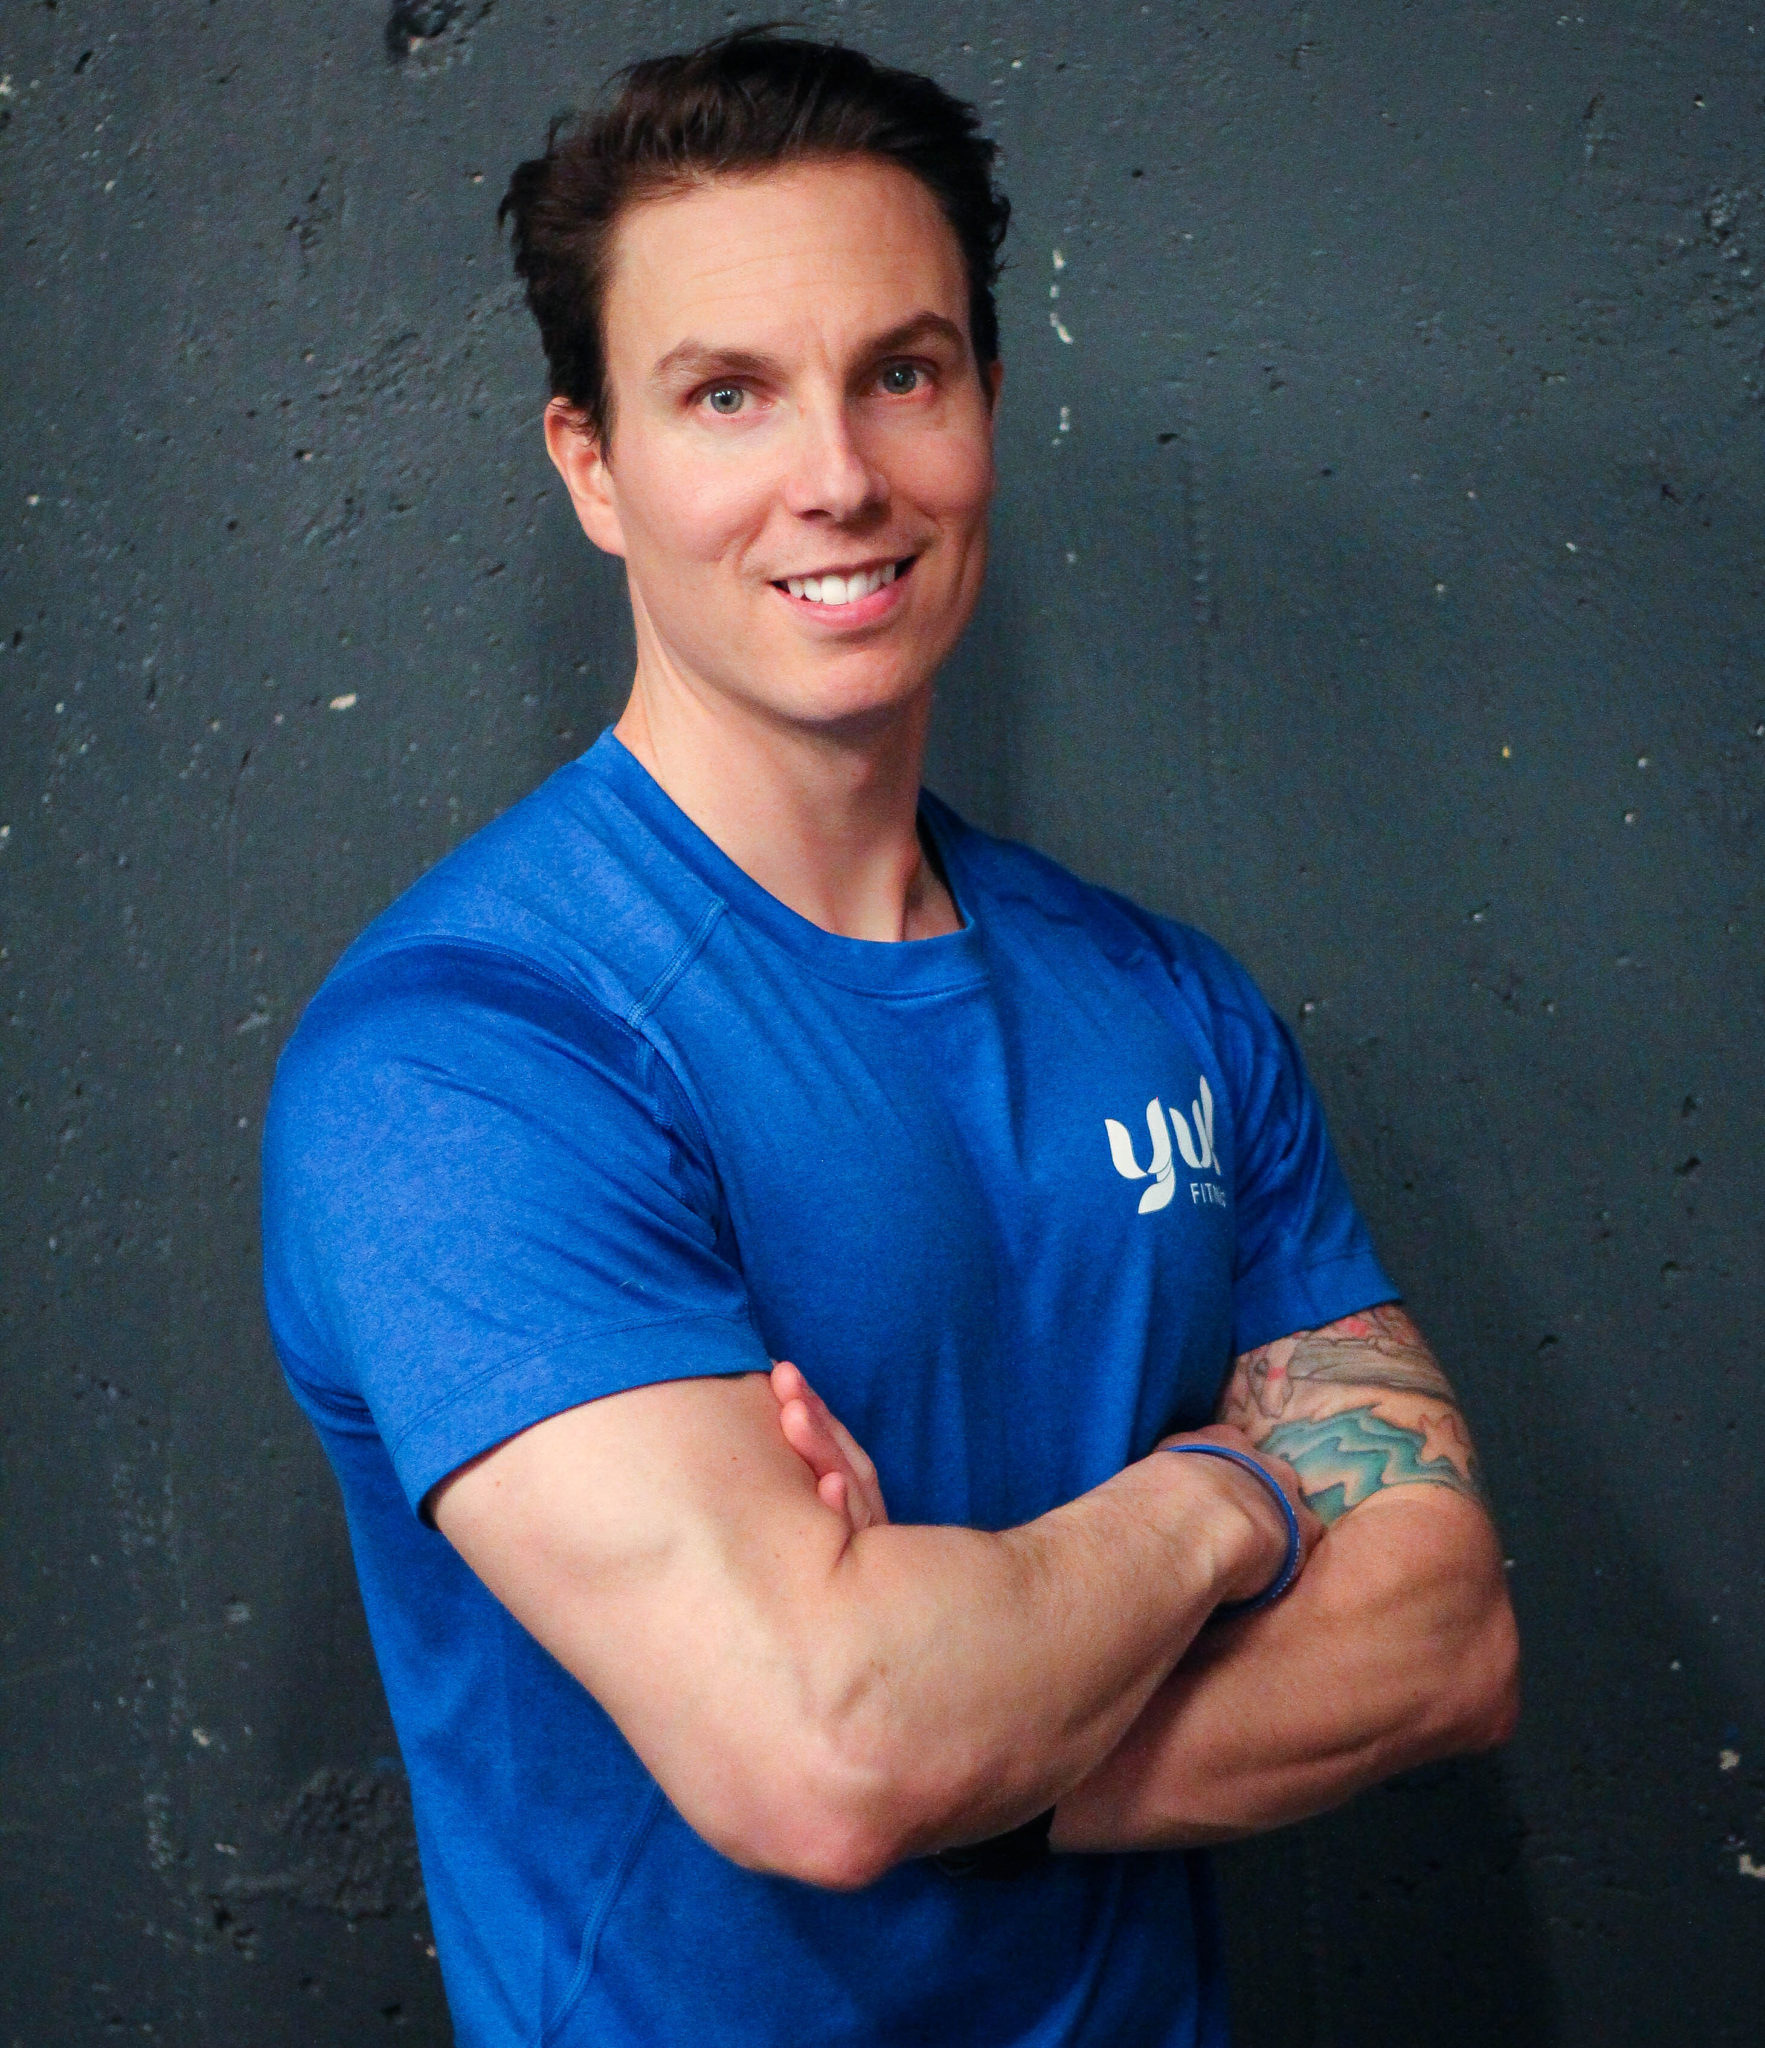 Dino Masson Personal Trainer Montreal Yul Fitness